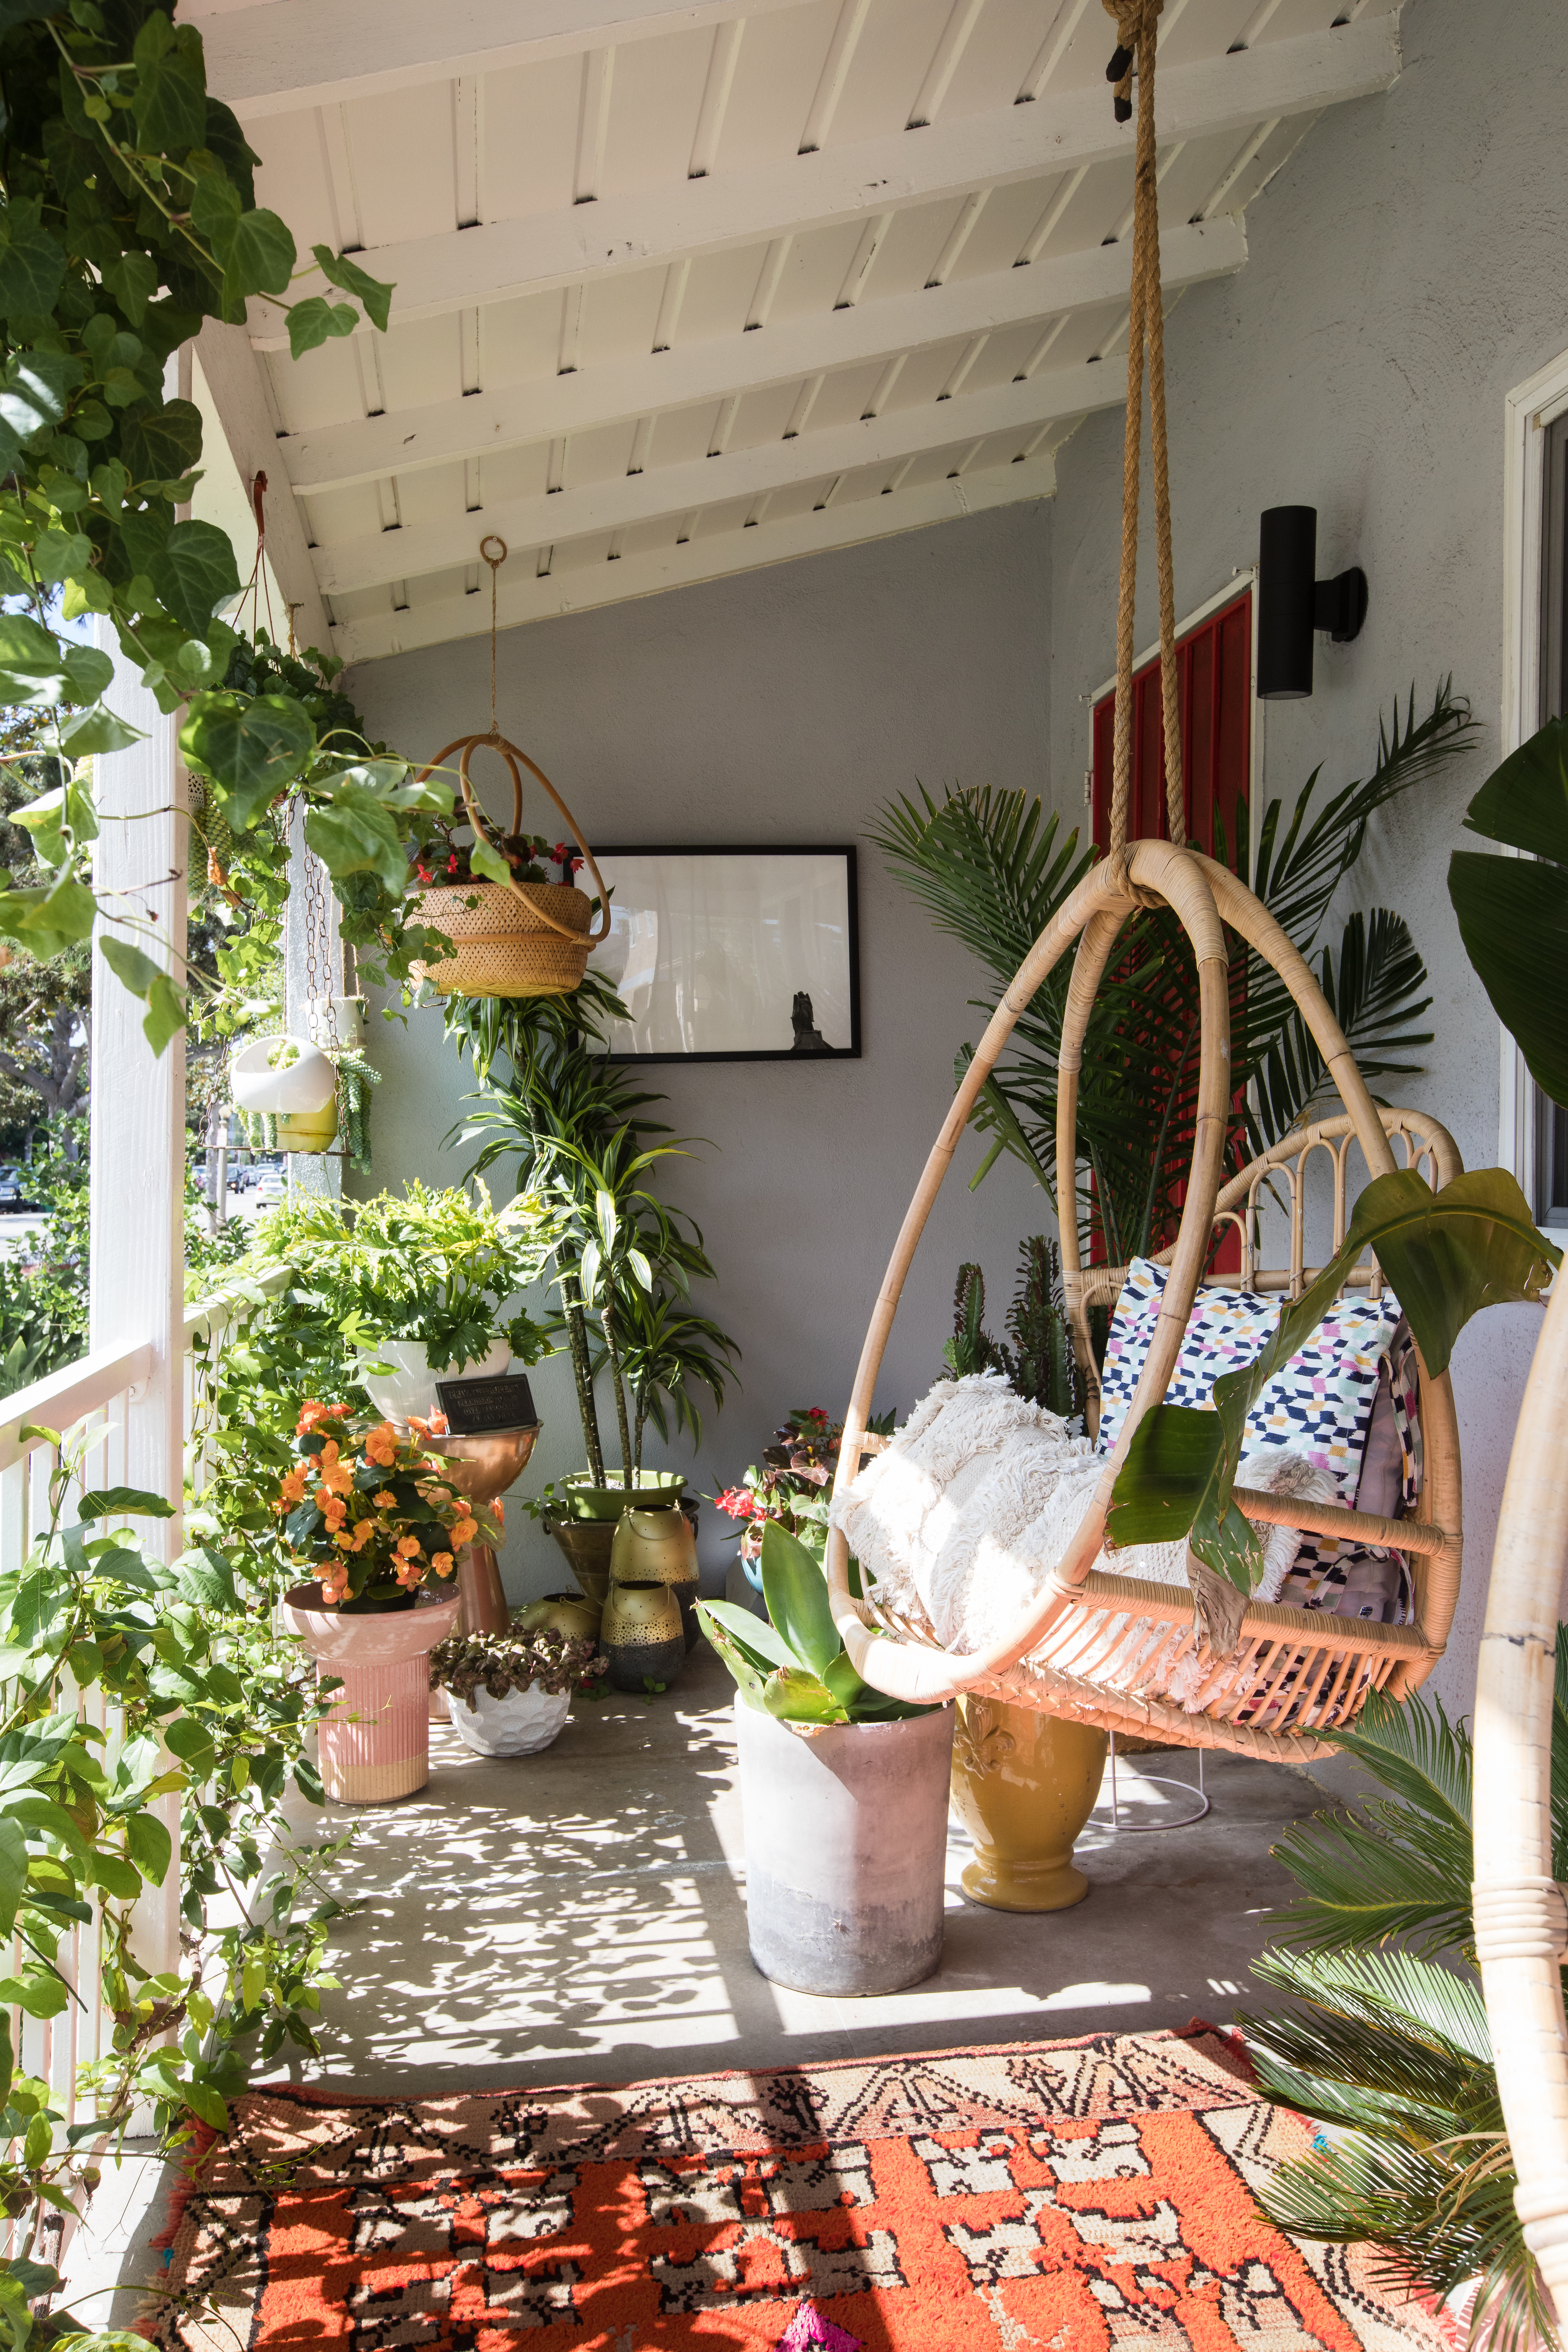 Best Small Outdoor Space Design Ideas Make Your Small Outdoor Space Feel Big Apartment Therapy